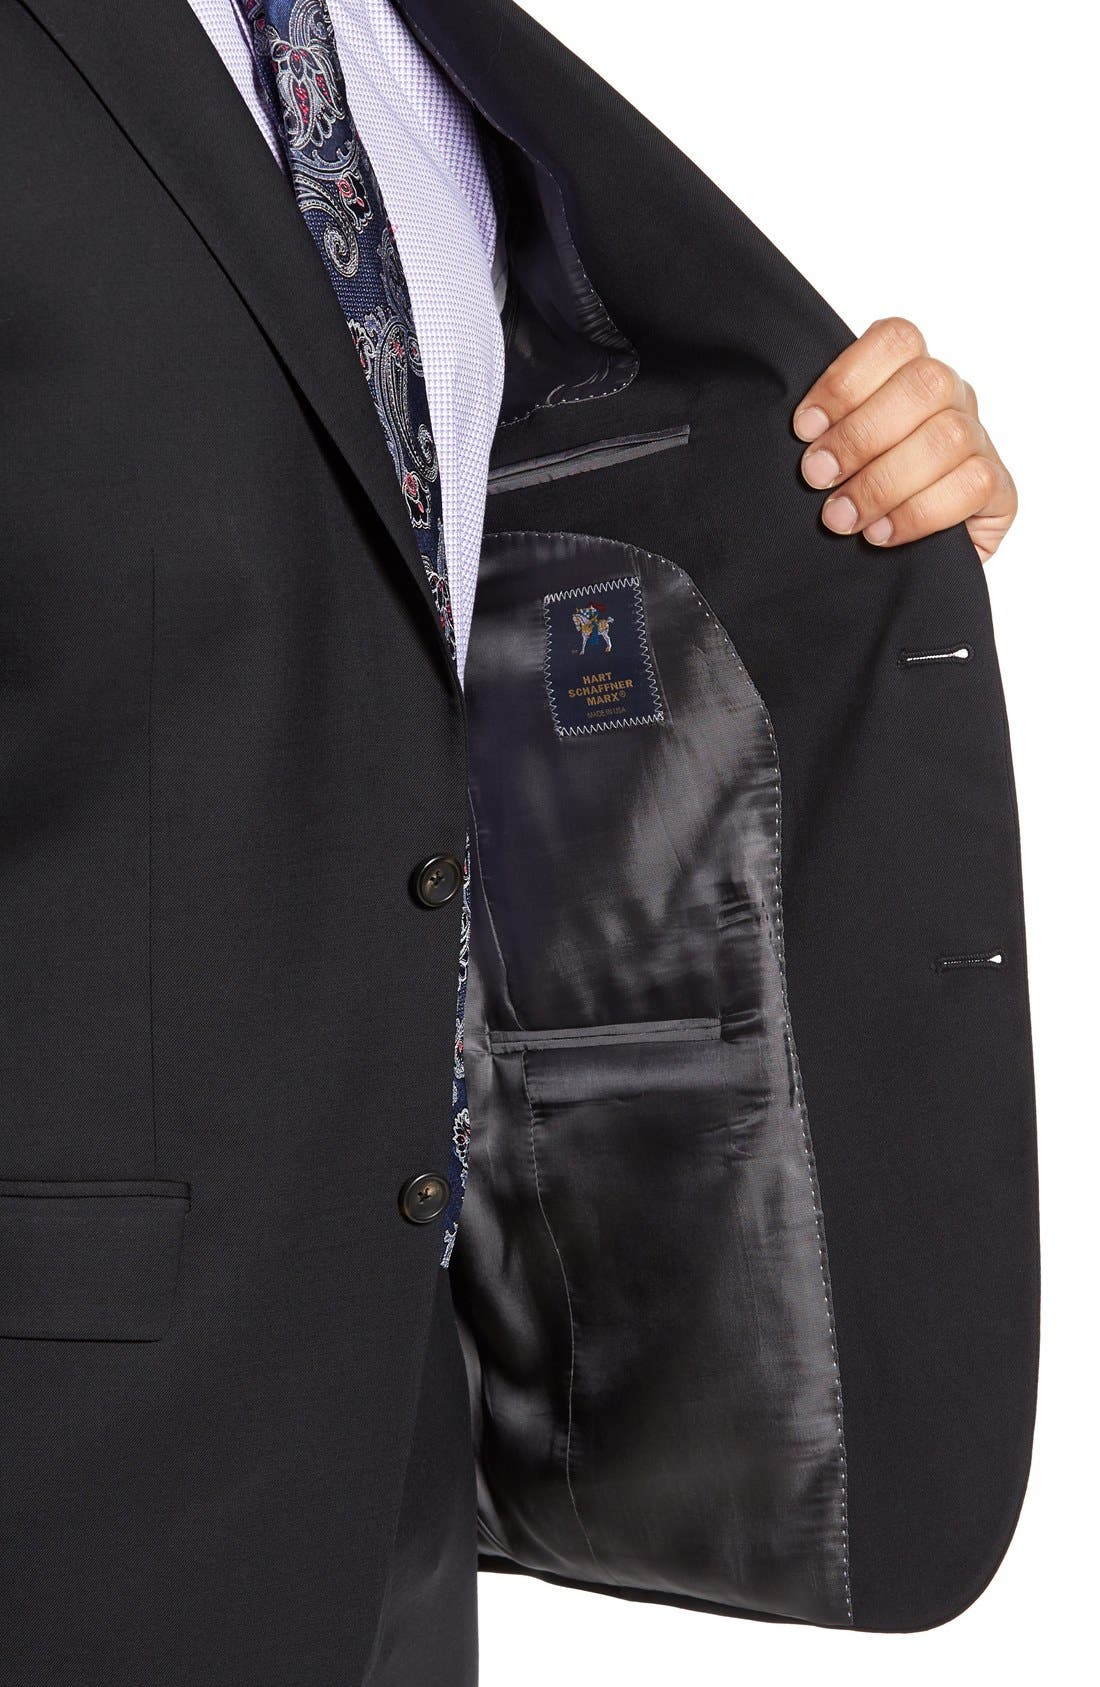 New York Classic Fit Solid Stretch Wool Suit,                             Alternate thumbnail 4, color,                             Black